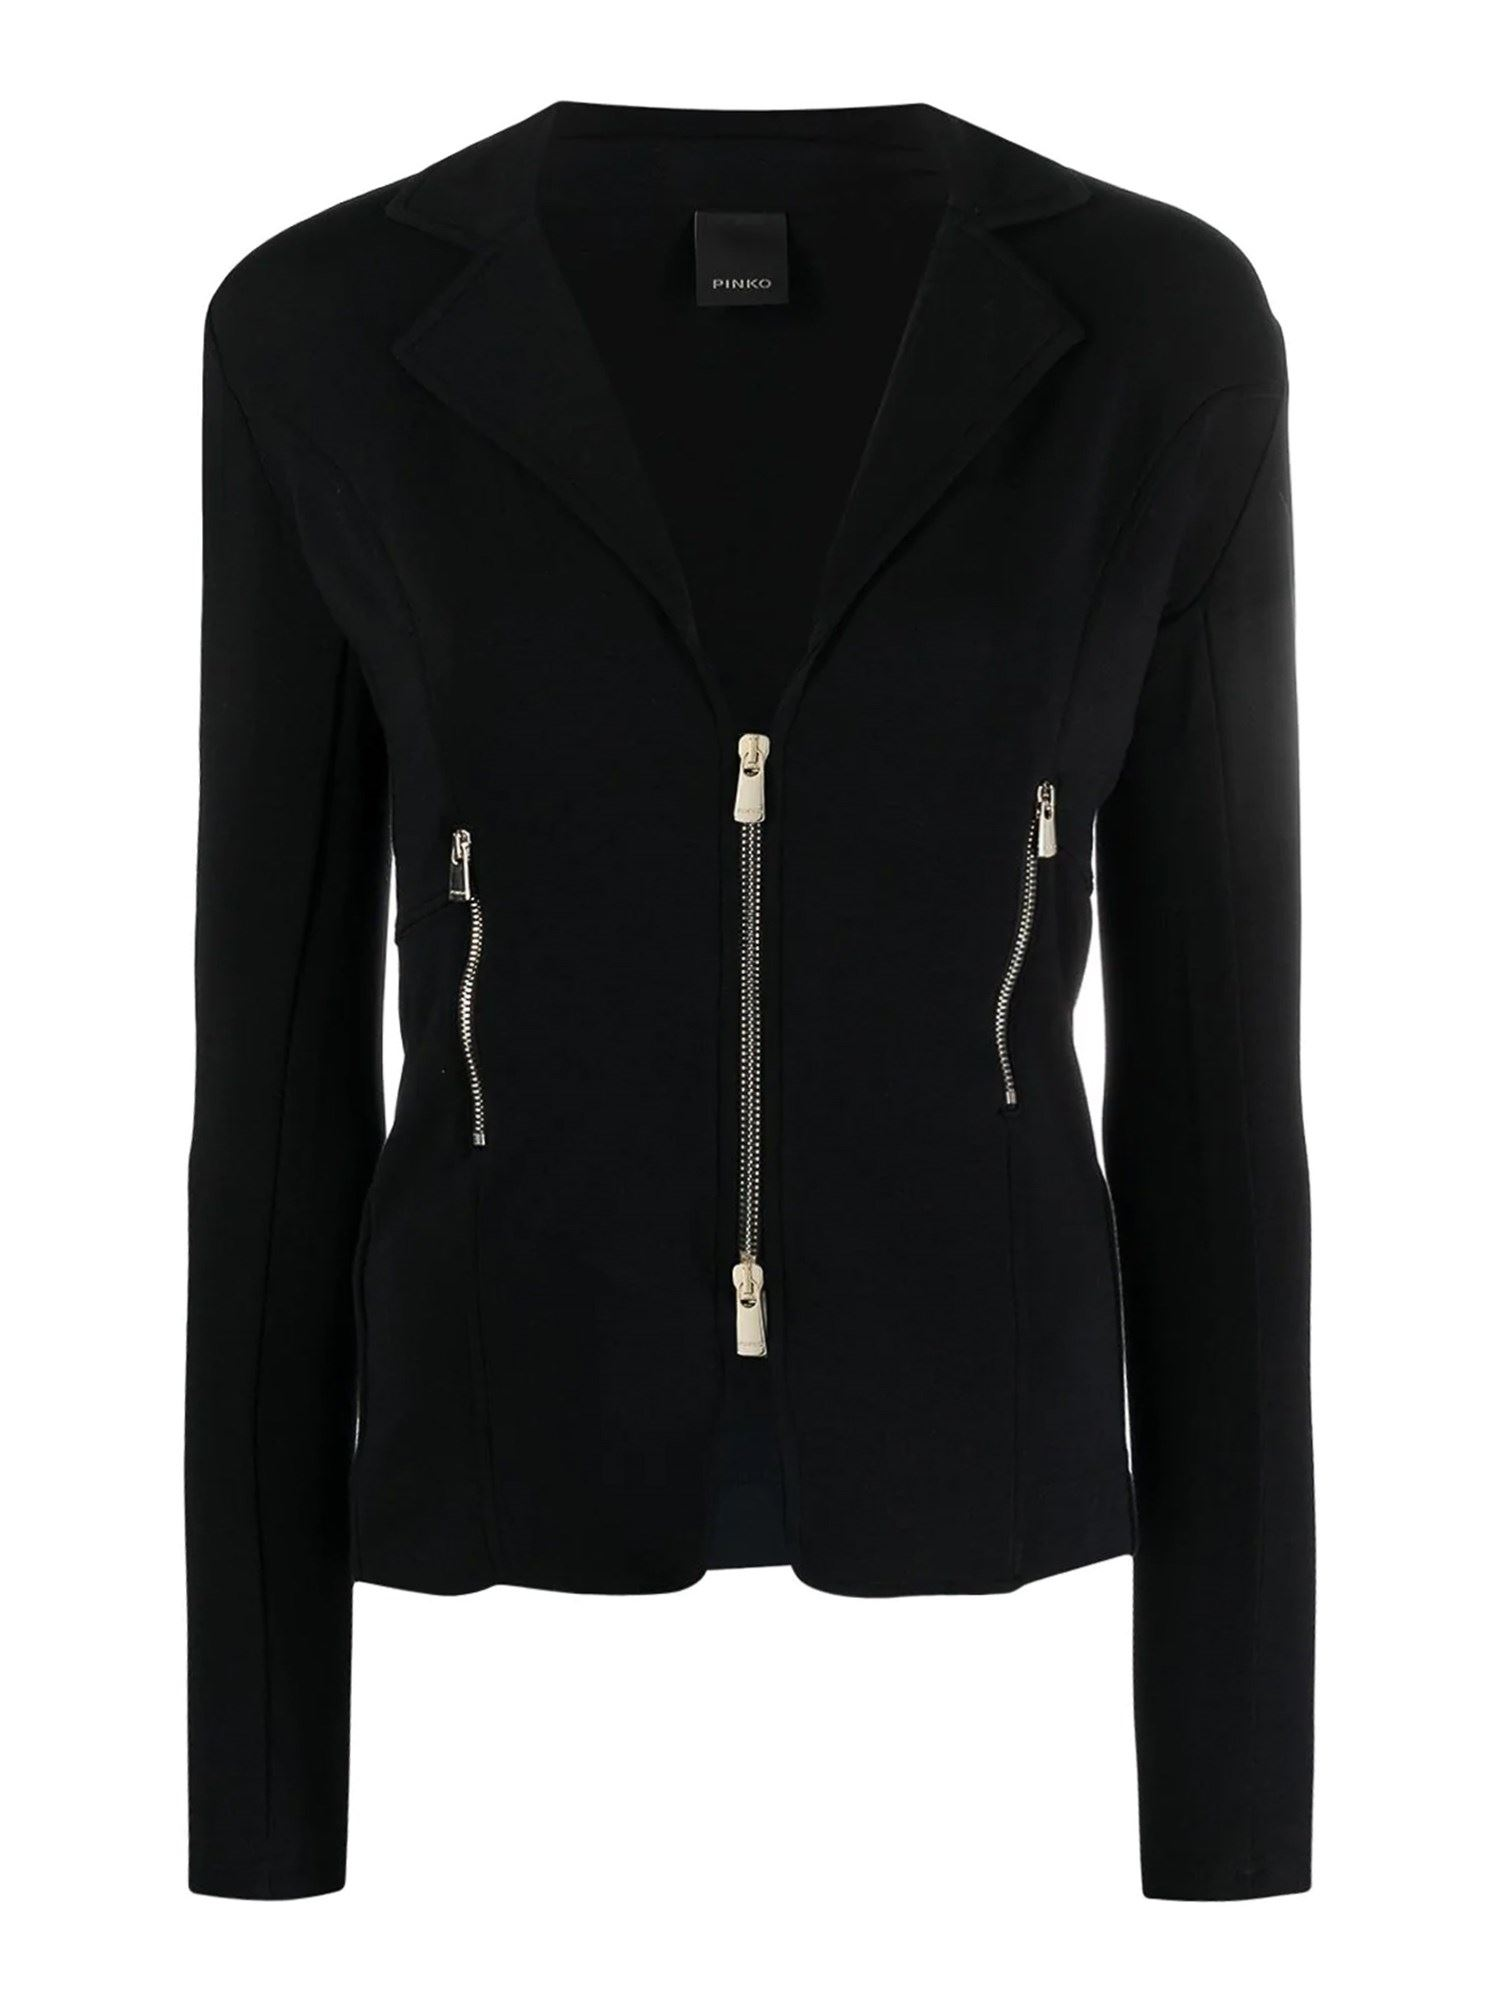 Pinko PINKO ZIPPED BLAZER IN BLACK